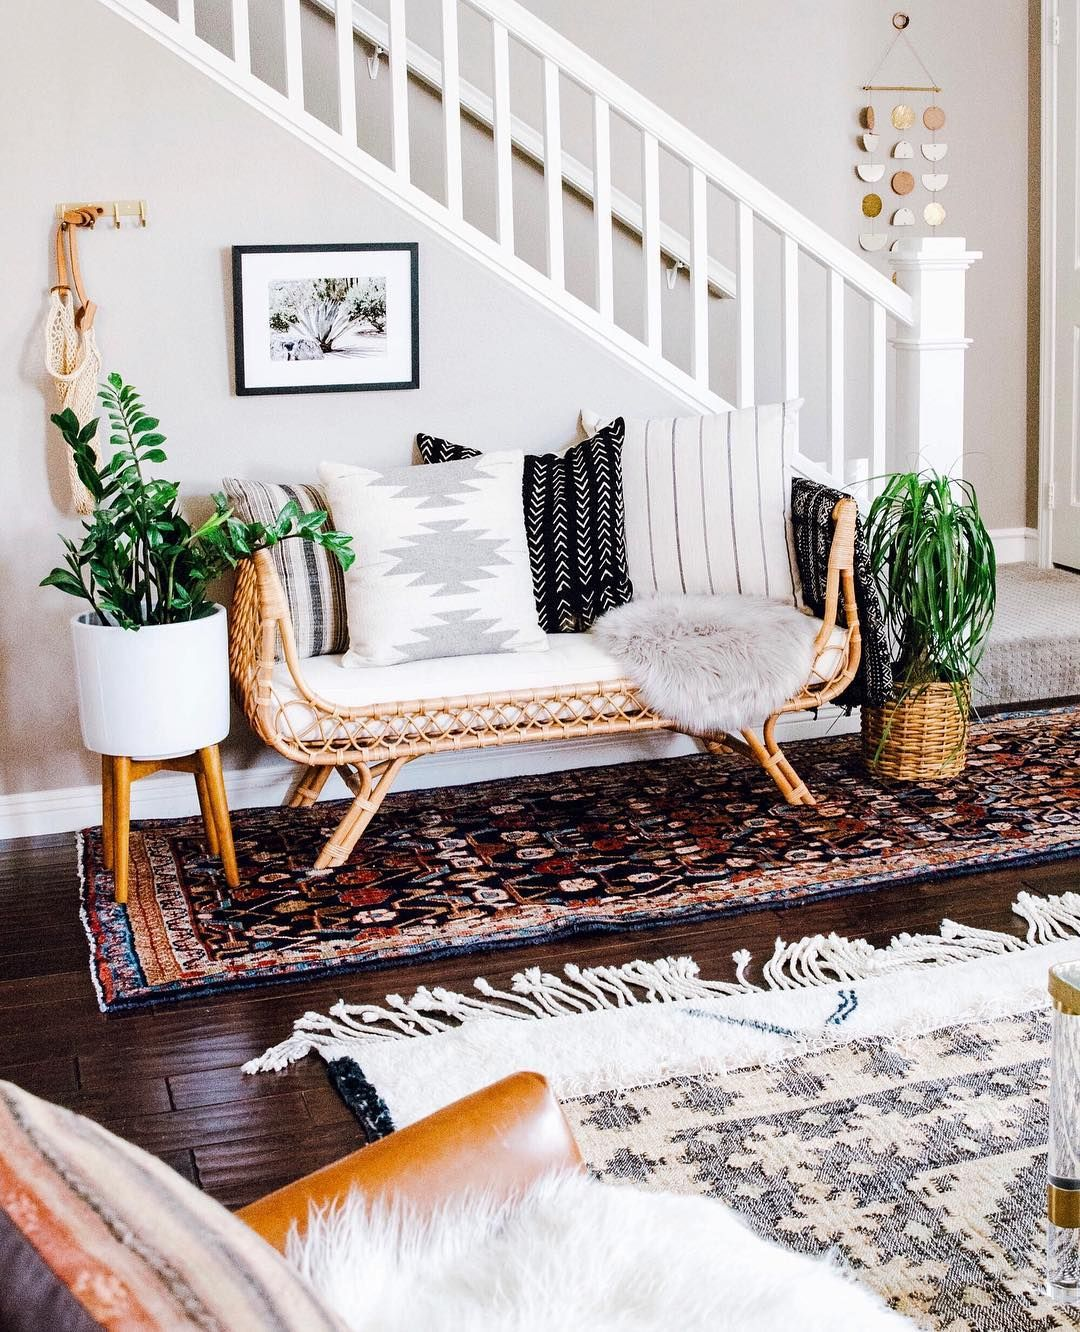 50 Brilliant Living Room Decor Ideas In 2019: Pin By K A T E On Home :: In 2019